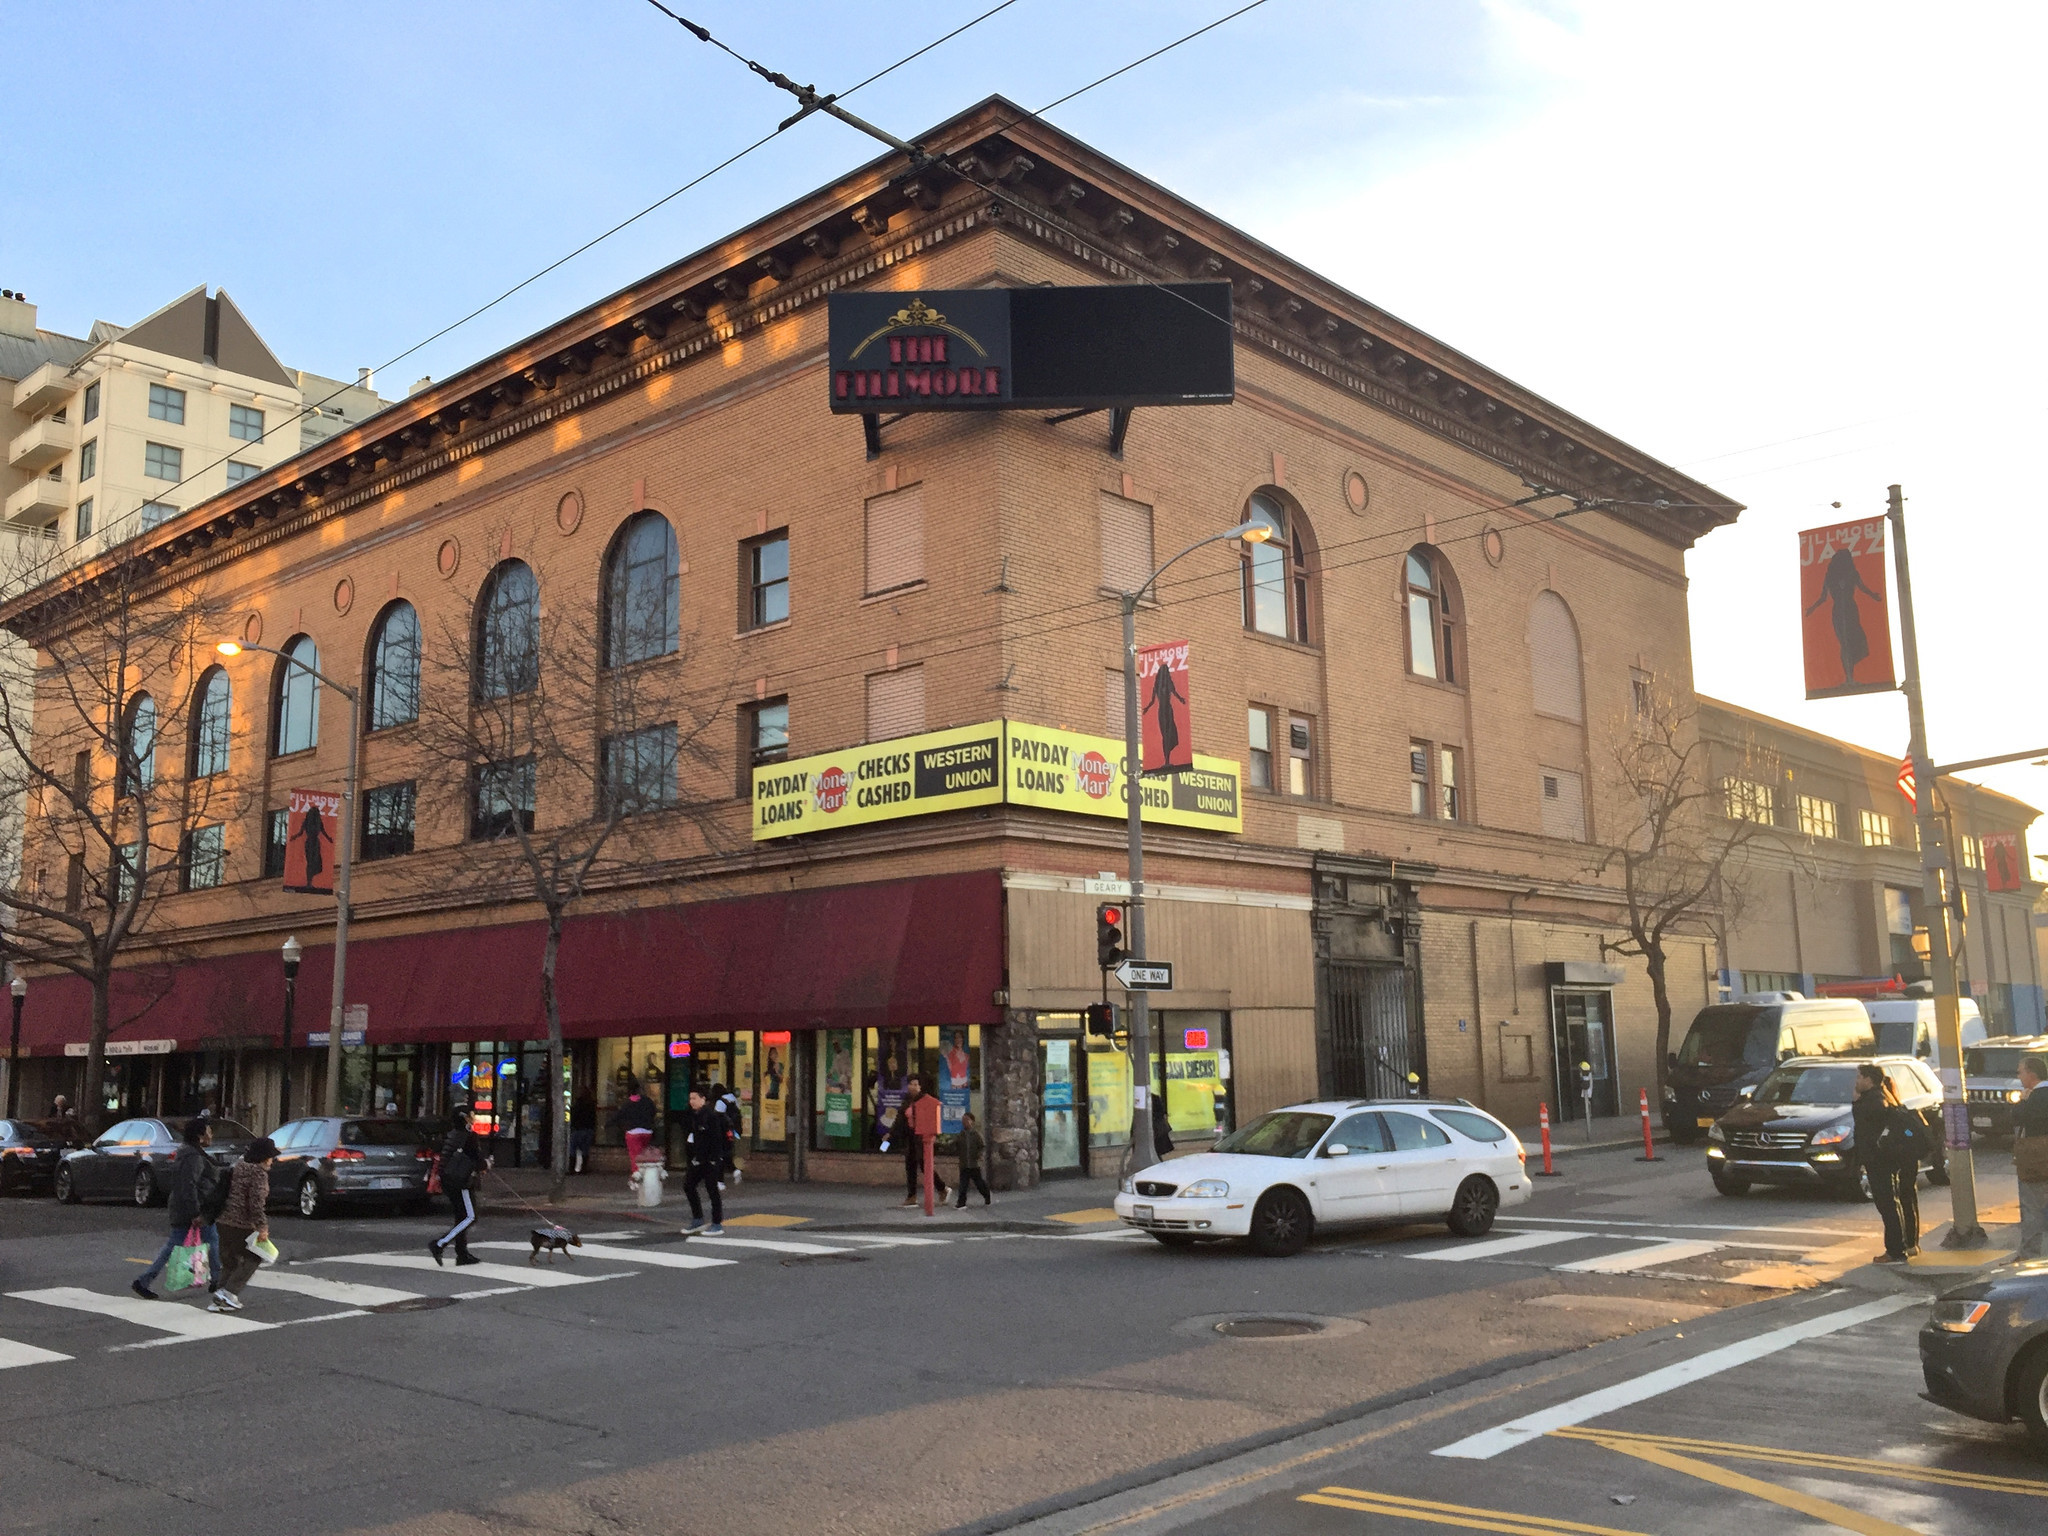 The Fillmore stands on Geary Boulevard just past Fillmore Street.